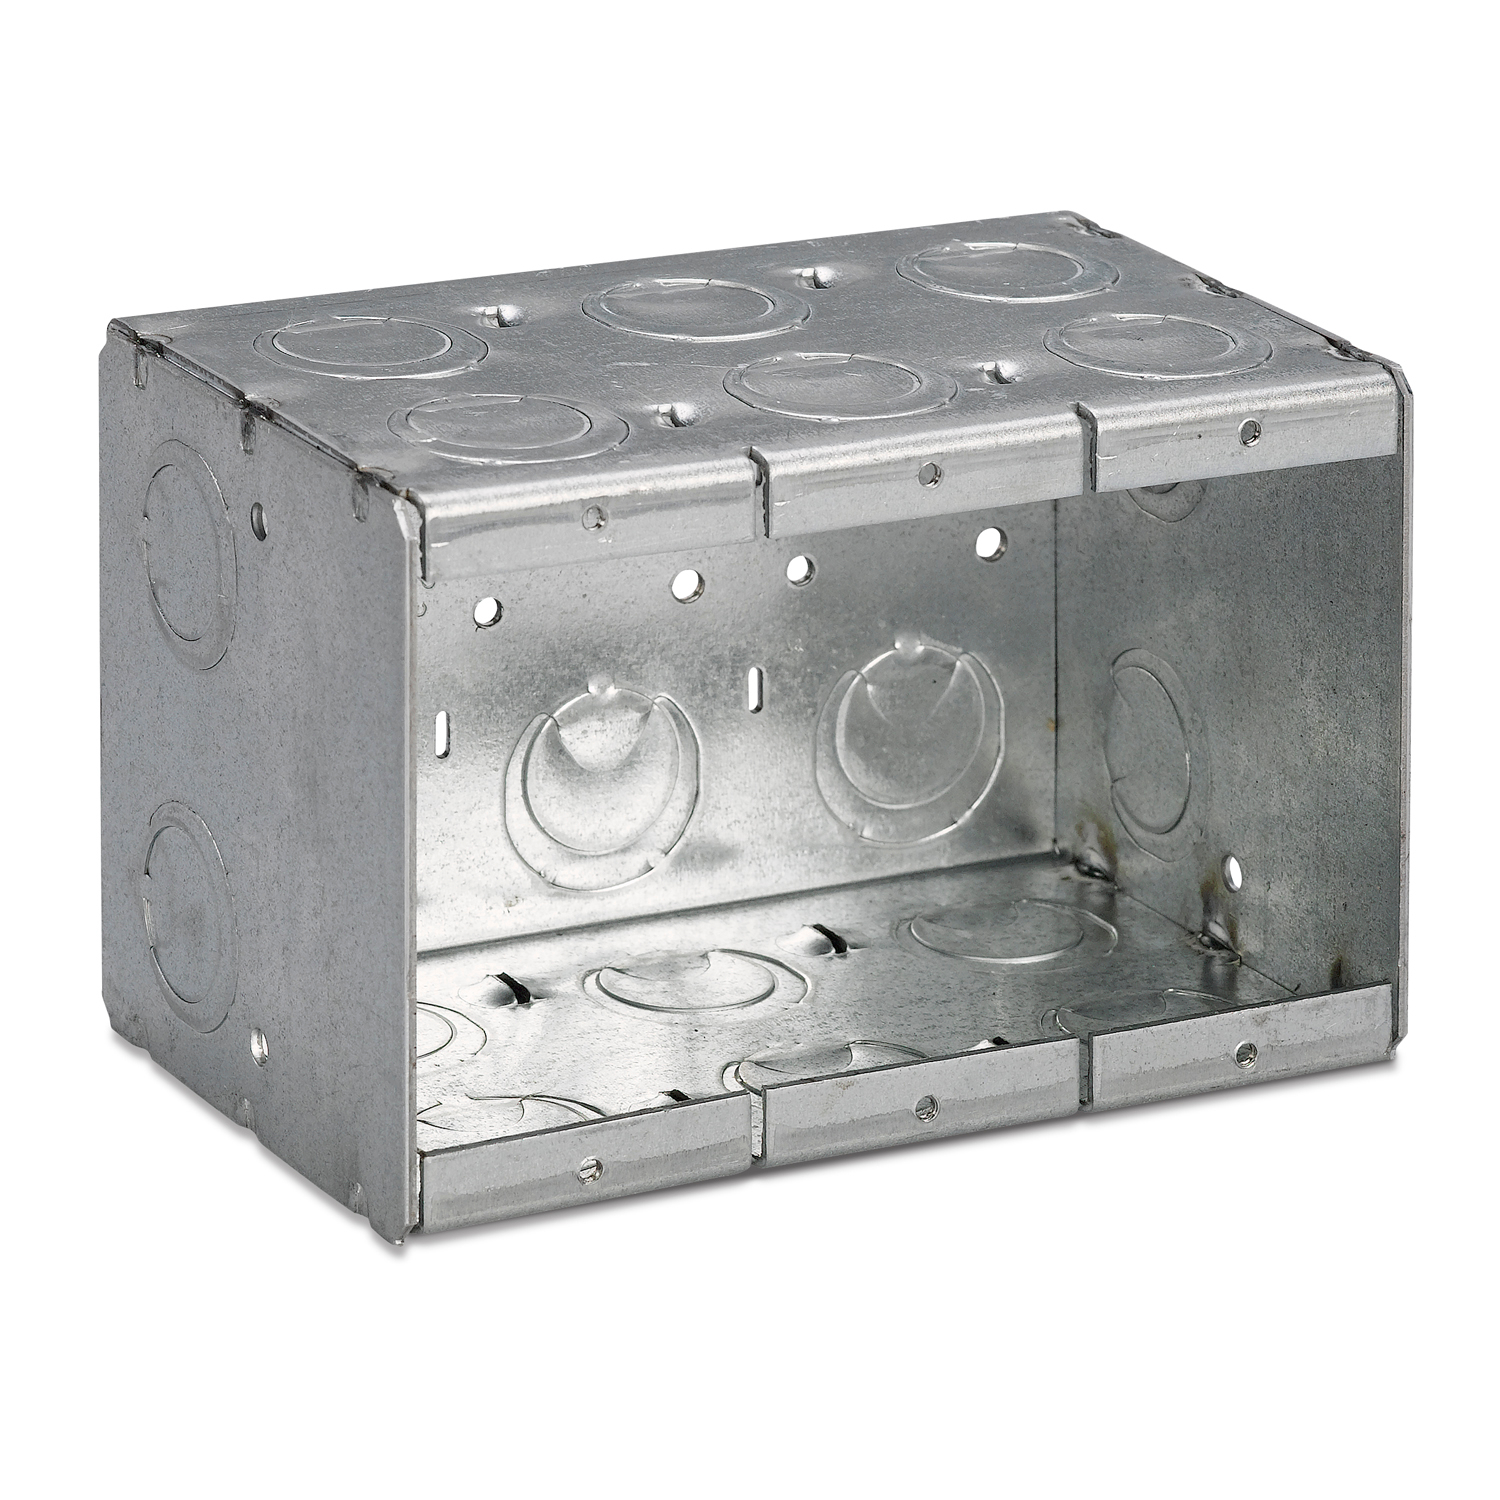 Steel City® Masonry Box, Deep Welded, 3 Outlets, 3 Gangs, 16 Knockouts, 1/2 in, 3/4 in Knockout, Knockout Cable Entry, Threaded Mounting, 71 cu-in Capacity, Steel, Galvanized, Silver, 3-3/4 in L x 5-1/2 in W x 3-1/2 in D Dimensions